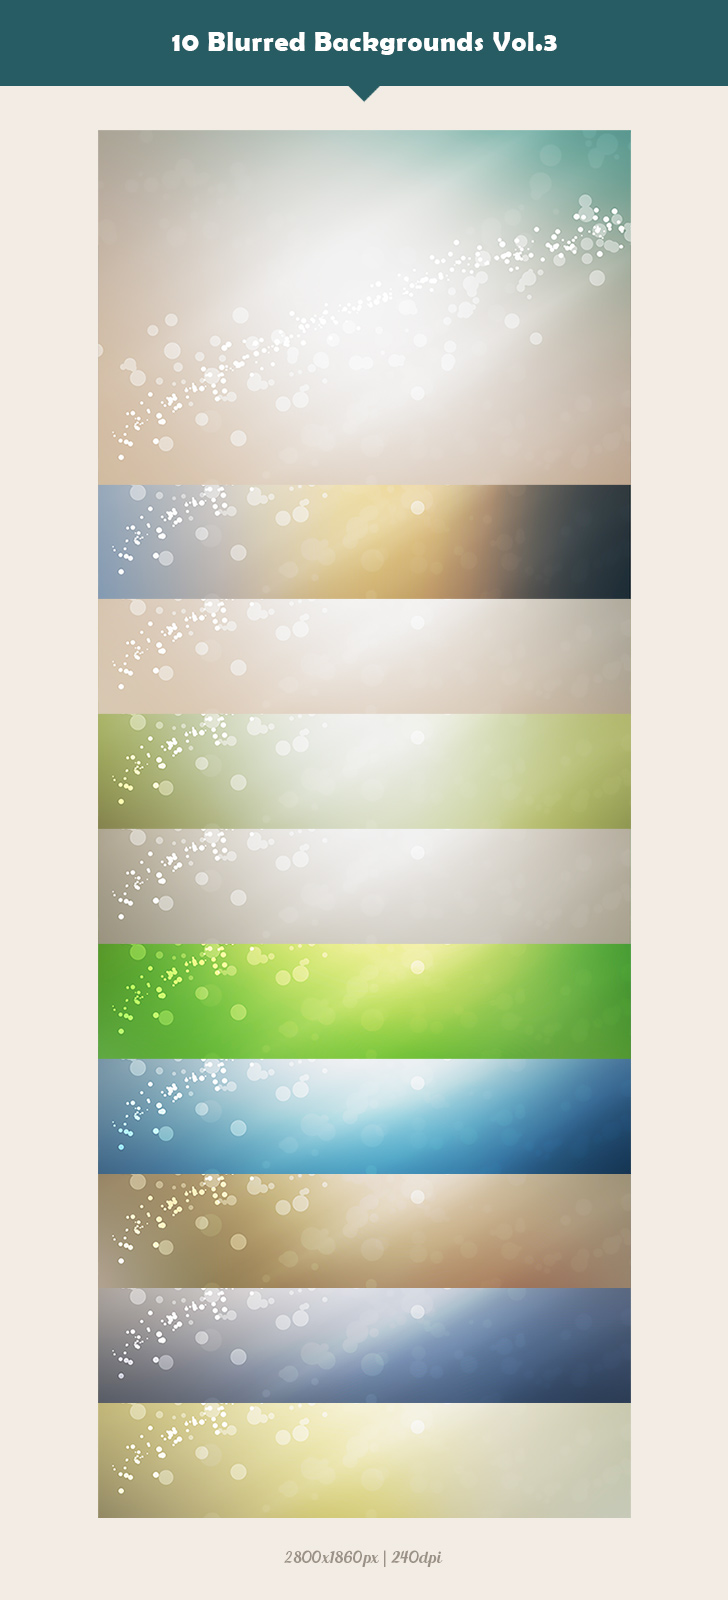 blurred-backgrounds-light-and-strips---large-featured